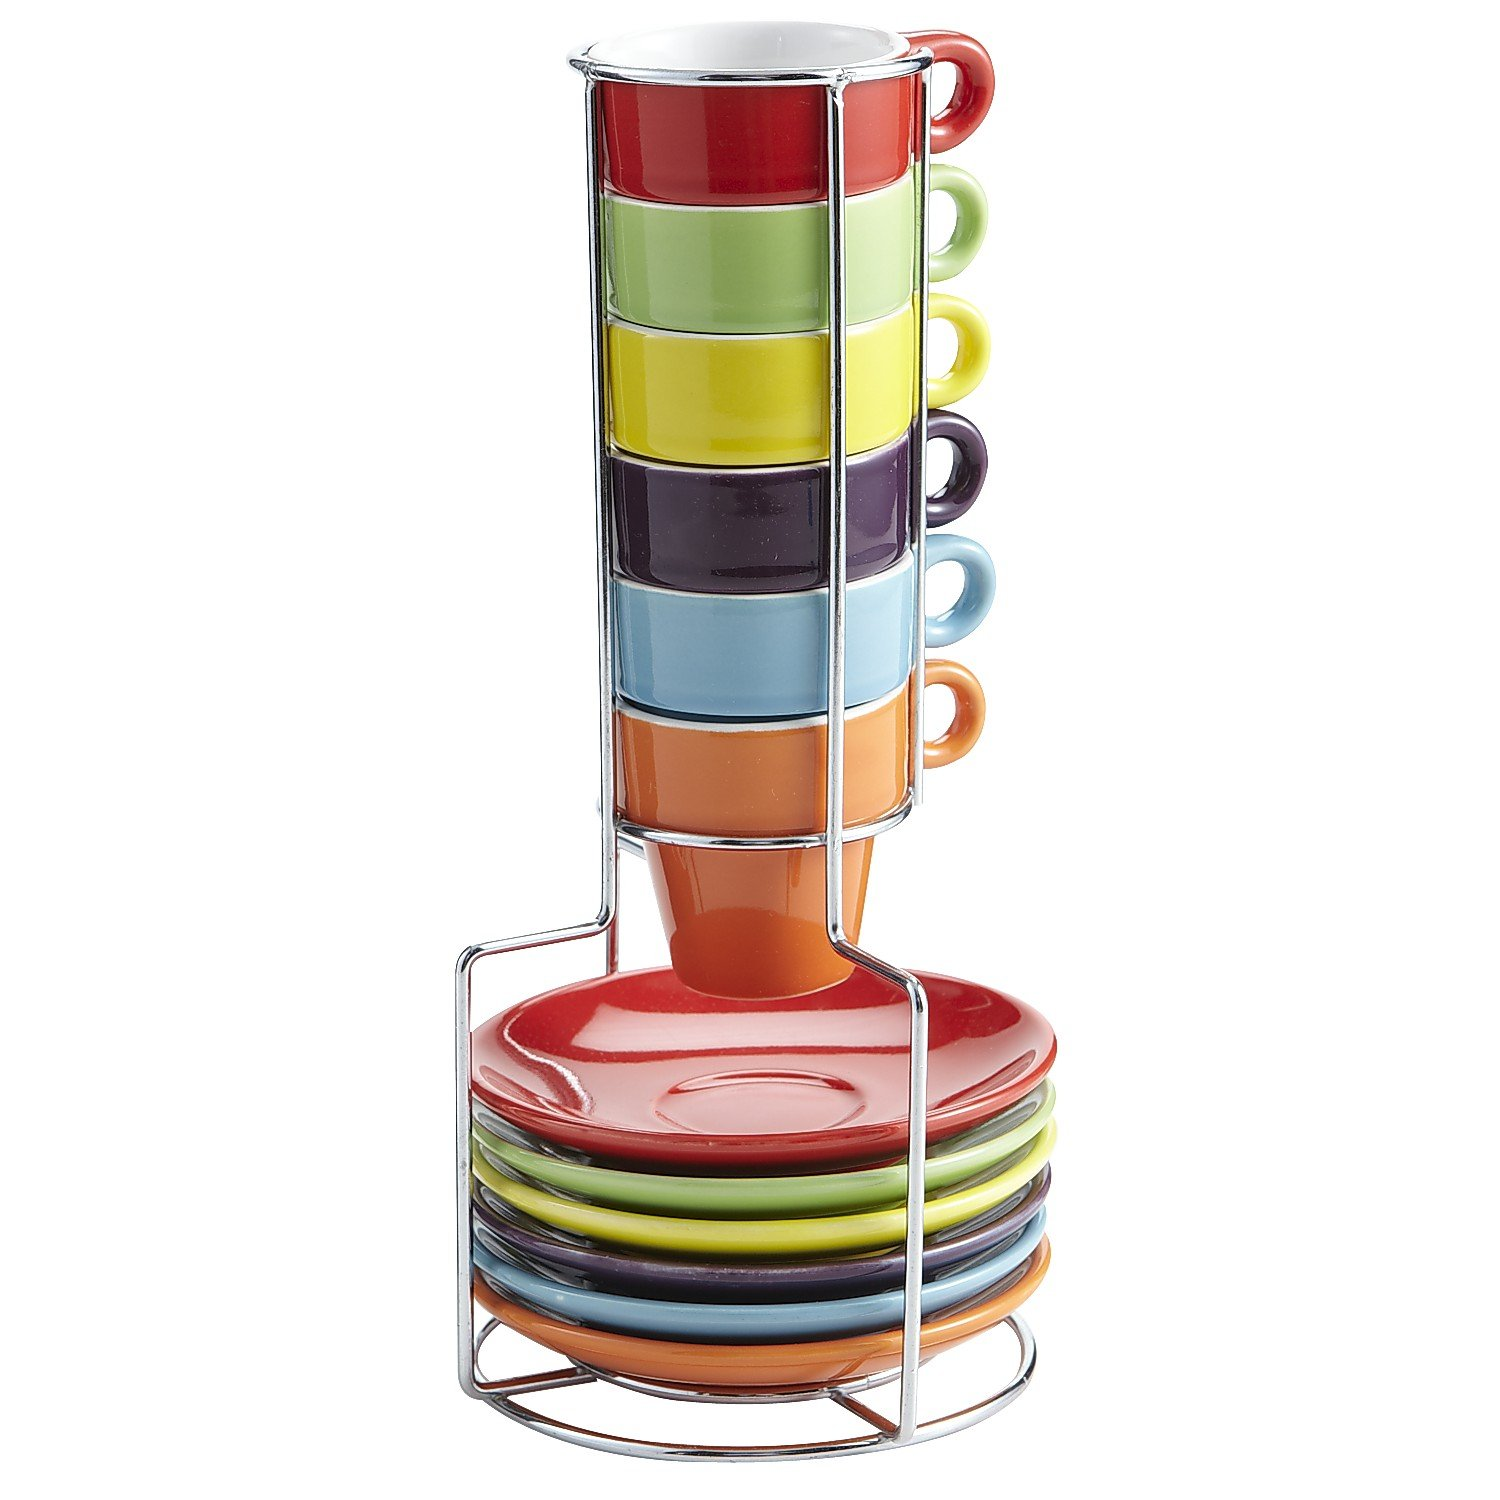 Pier 1 Imports Multicolor Colorful Stacking Espresso Demitasse 1.5oz Mugs Set with Saucers